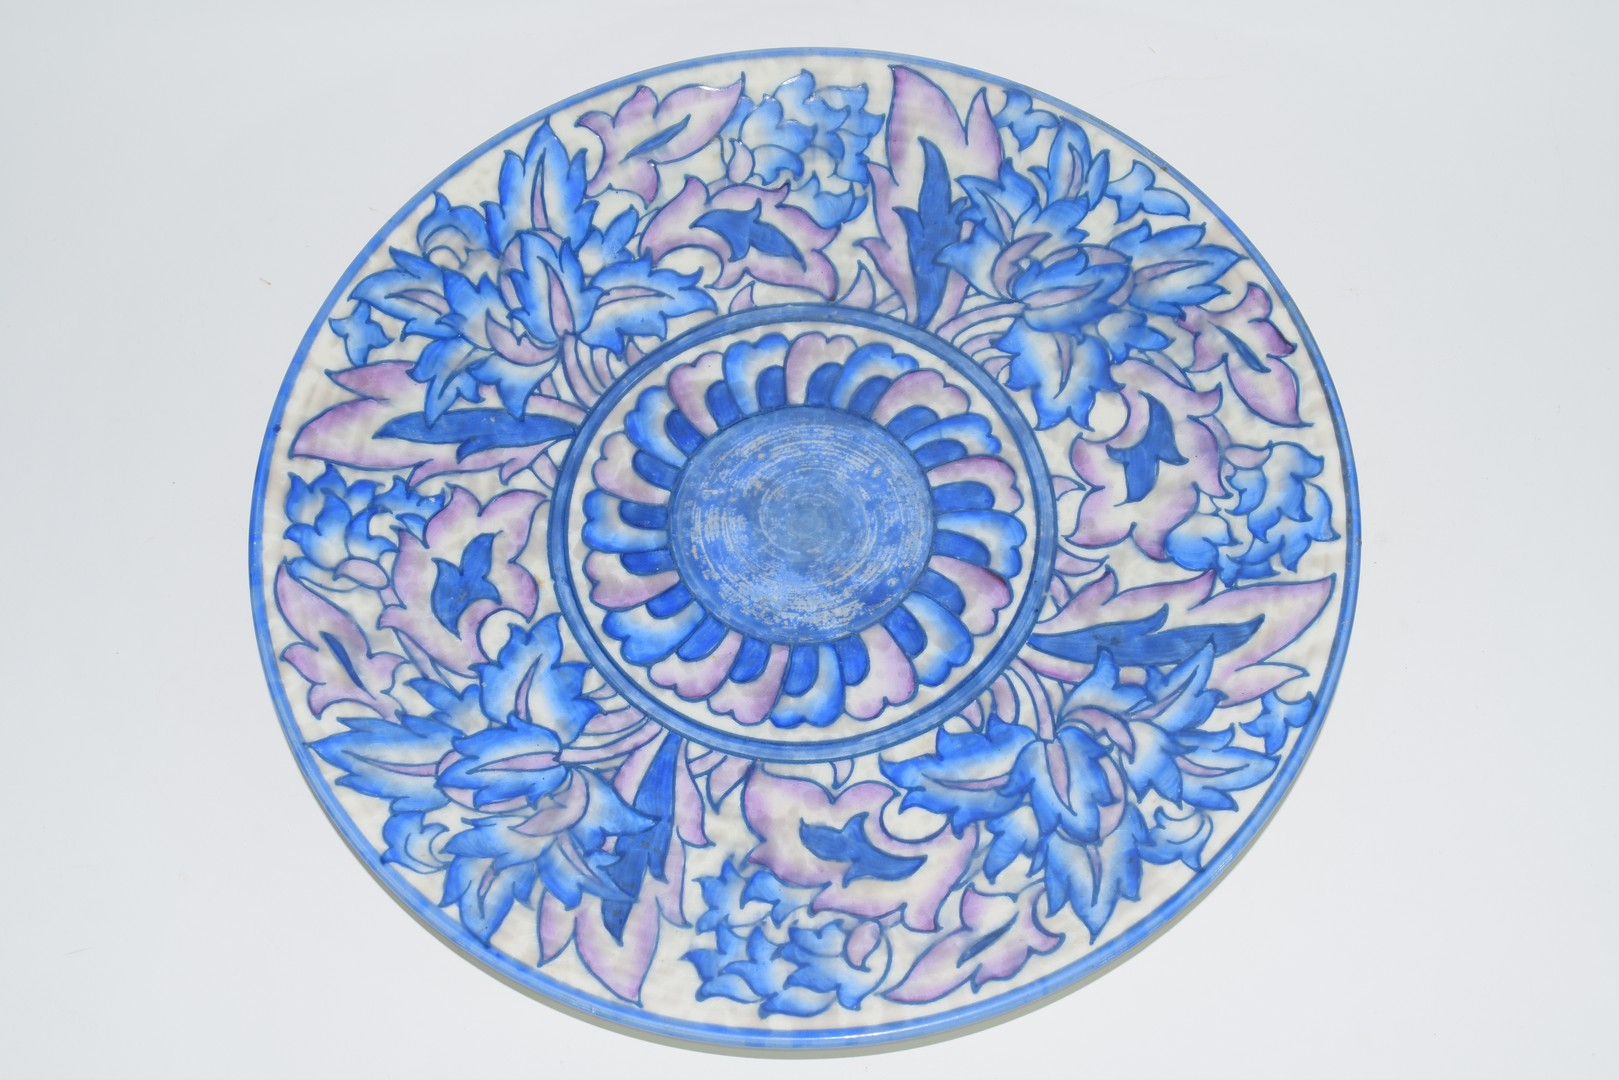 Crown Ducal charger by Charlotte Rhead - Image 2 of 4